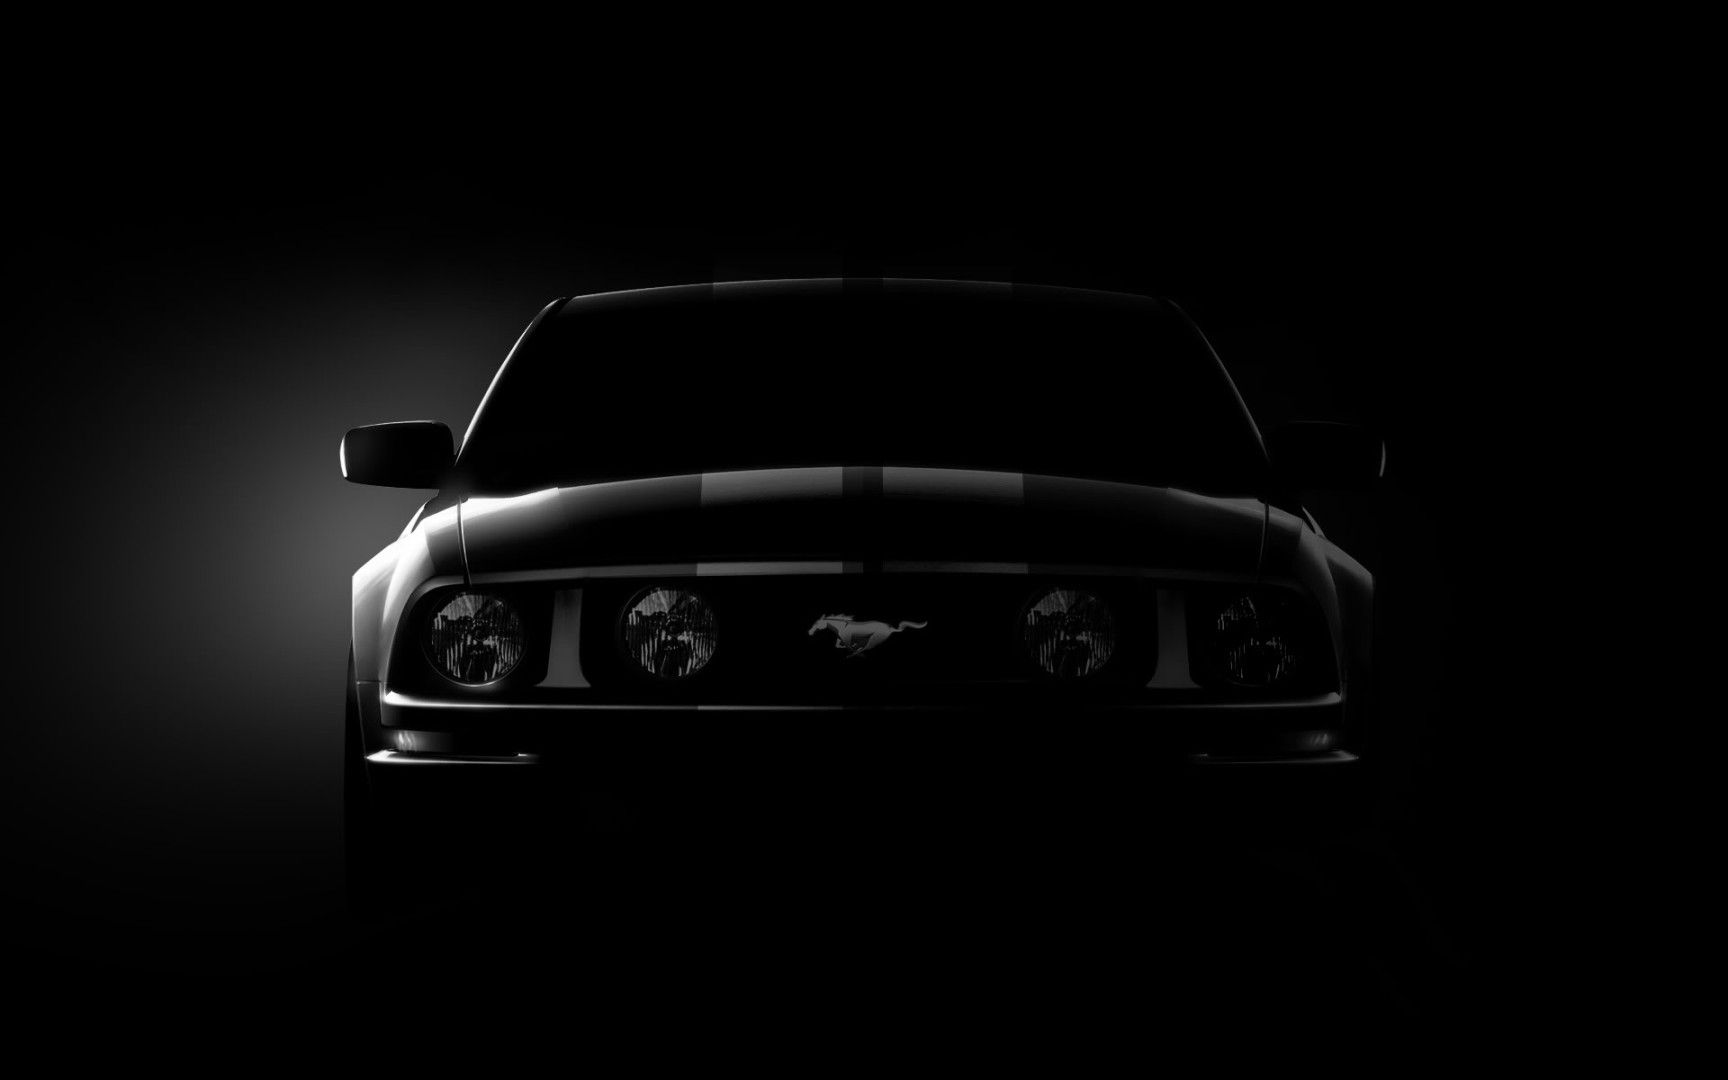 Ford Mustang Black Background Wallpaper Ford Mustang Gt Ford